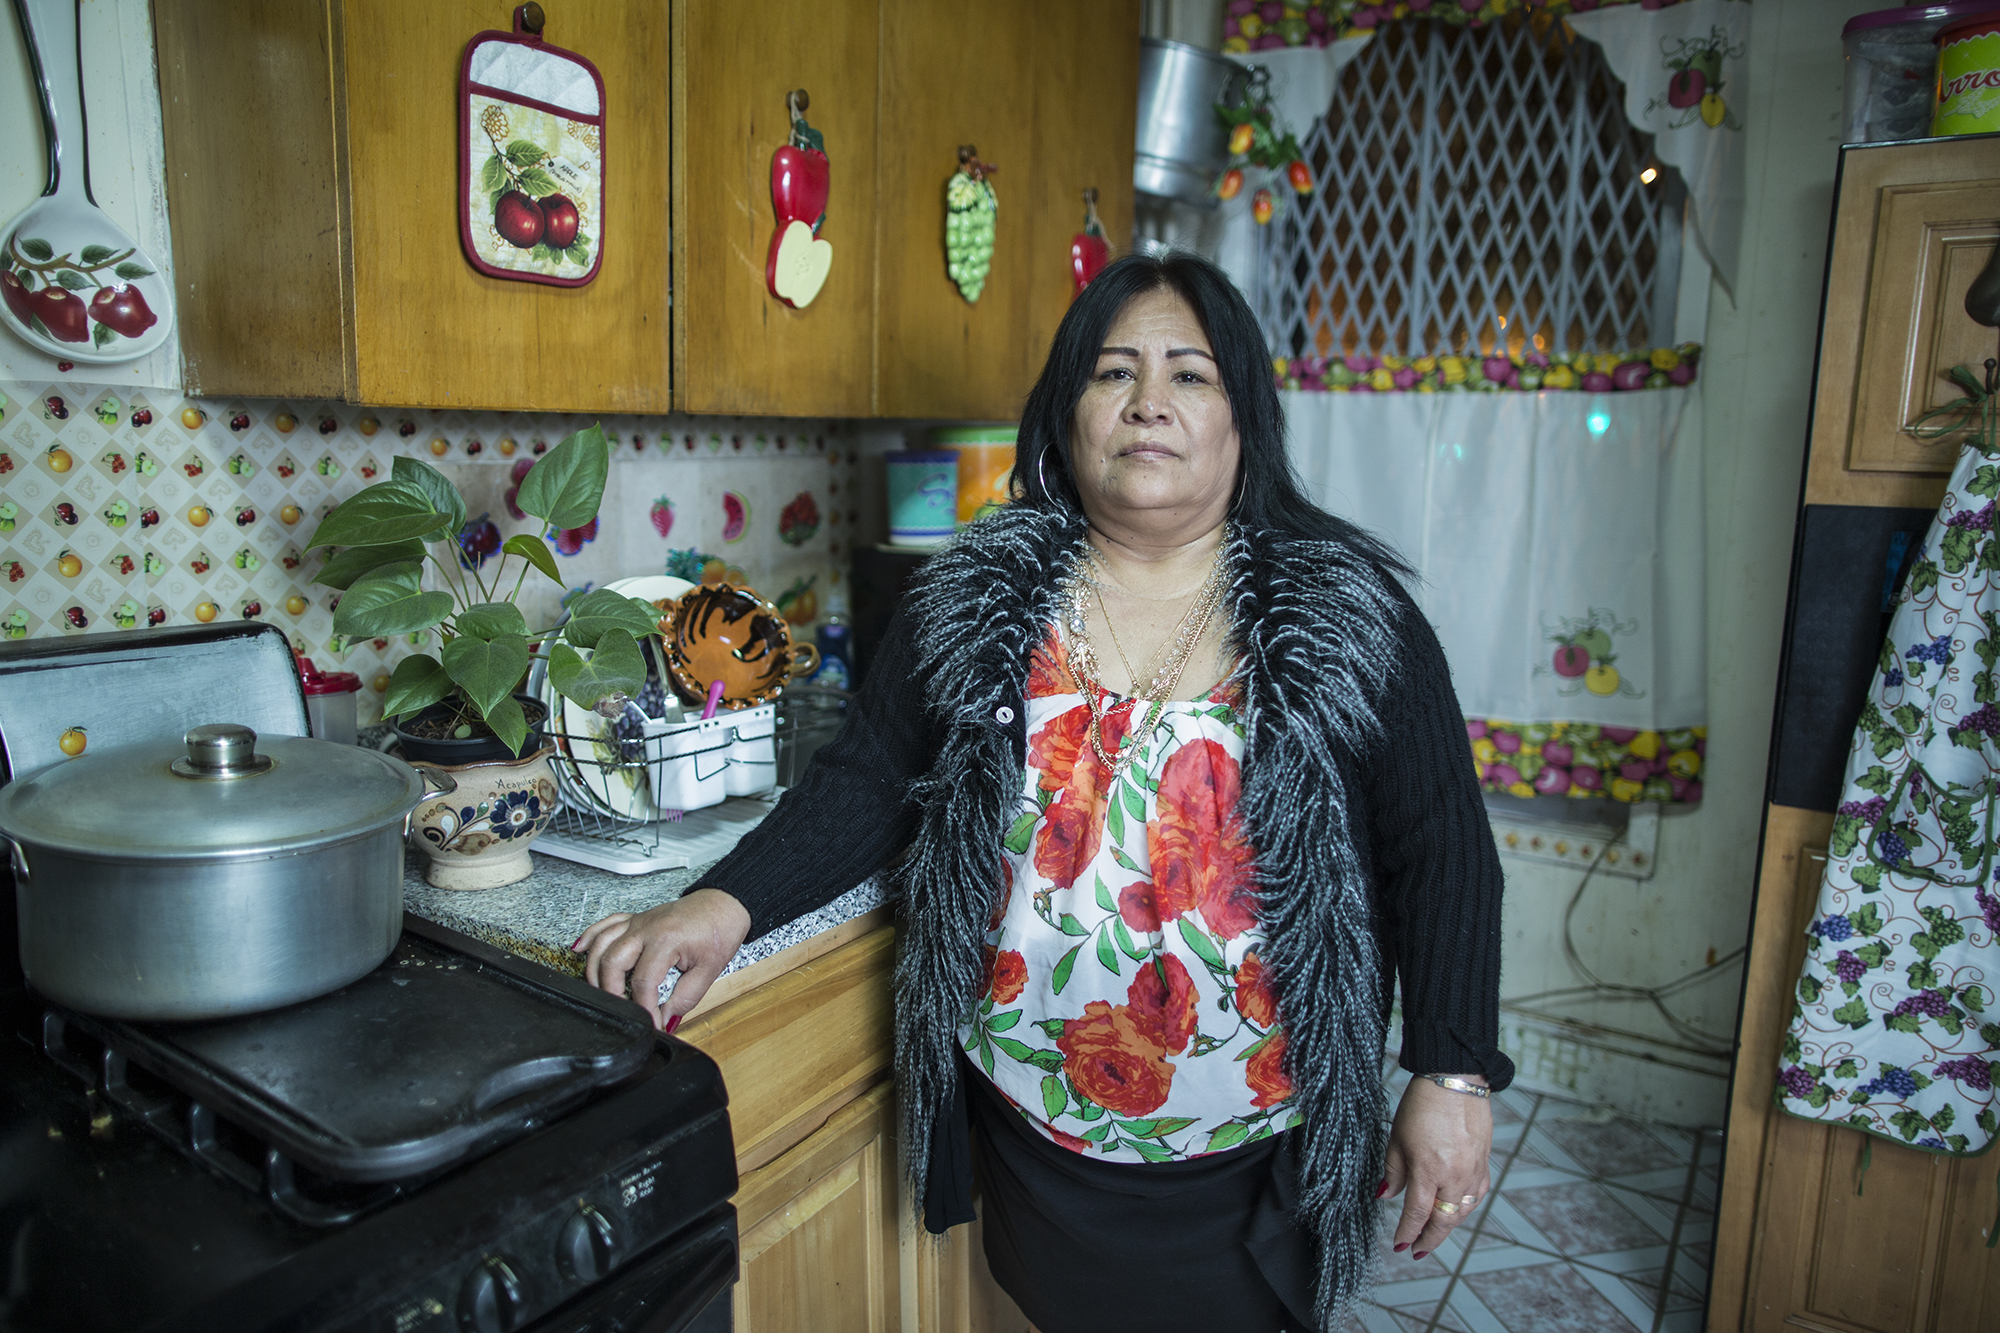 """Juanita Torres de León in the kitchen at her home on 59th Street, Sunset Park, Brooklyn. She was born in Atencingo, Puebla, but for 27 years she has lived with her whole nuclear family in Sunset Park. Juanita is a member of Saint Jacobi's Church and coordinator of the community kitchen. Juanita was part of the team that eventually came to be known as """"Occupy Sandy"""" in 2012, feeding the volunteers who were helping hurricane victims."""